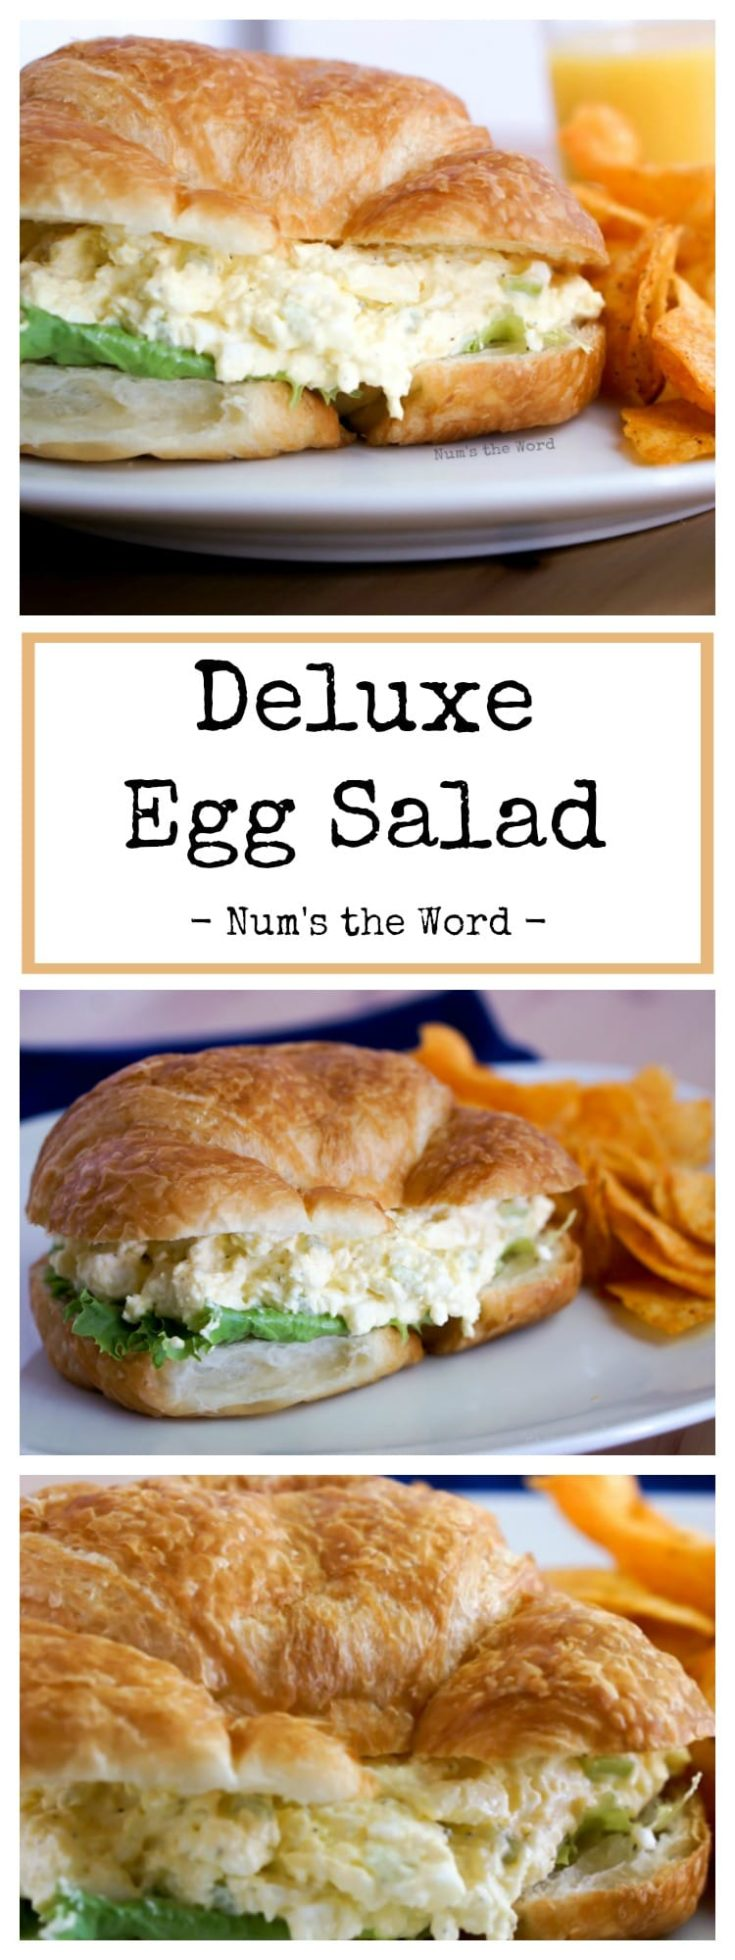 Deluxe Egg Salad – Looking for an upgrade on the traditional egg salad? Try this Deluxe Egg Salad! It includes cream cheese, grated onions and is by far my favorite version of egg salad